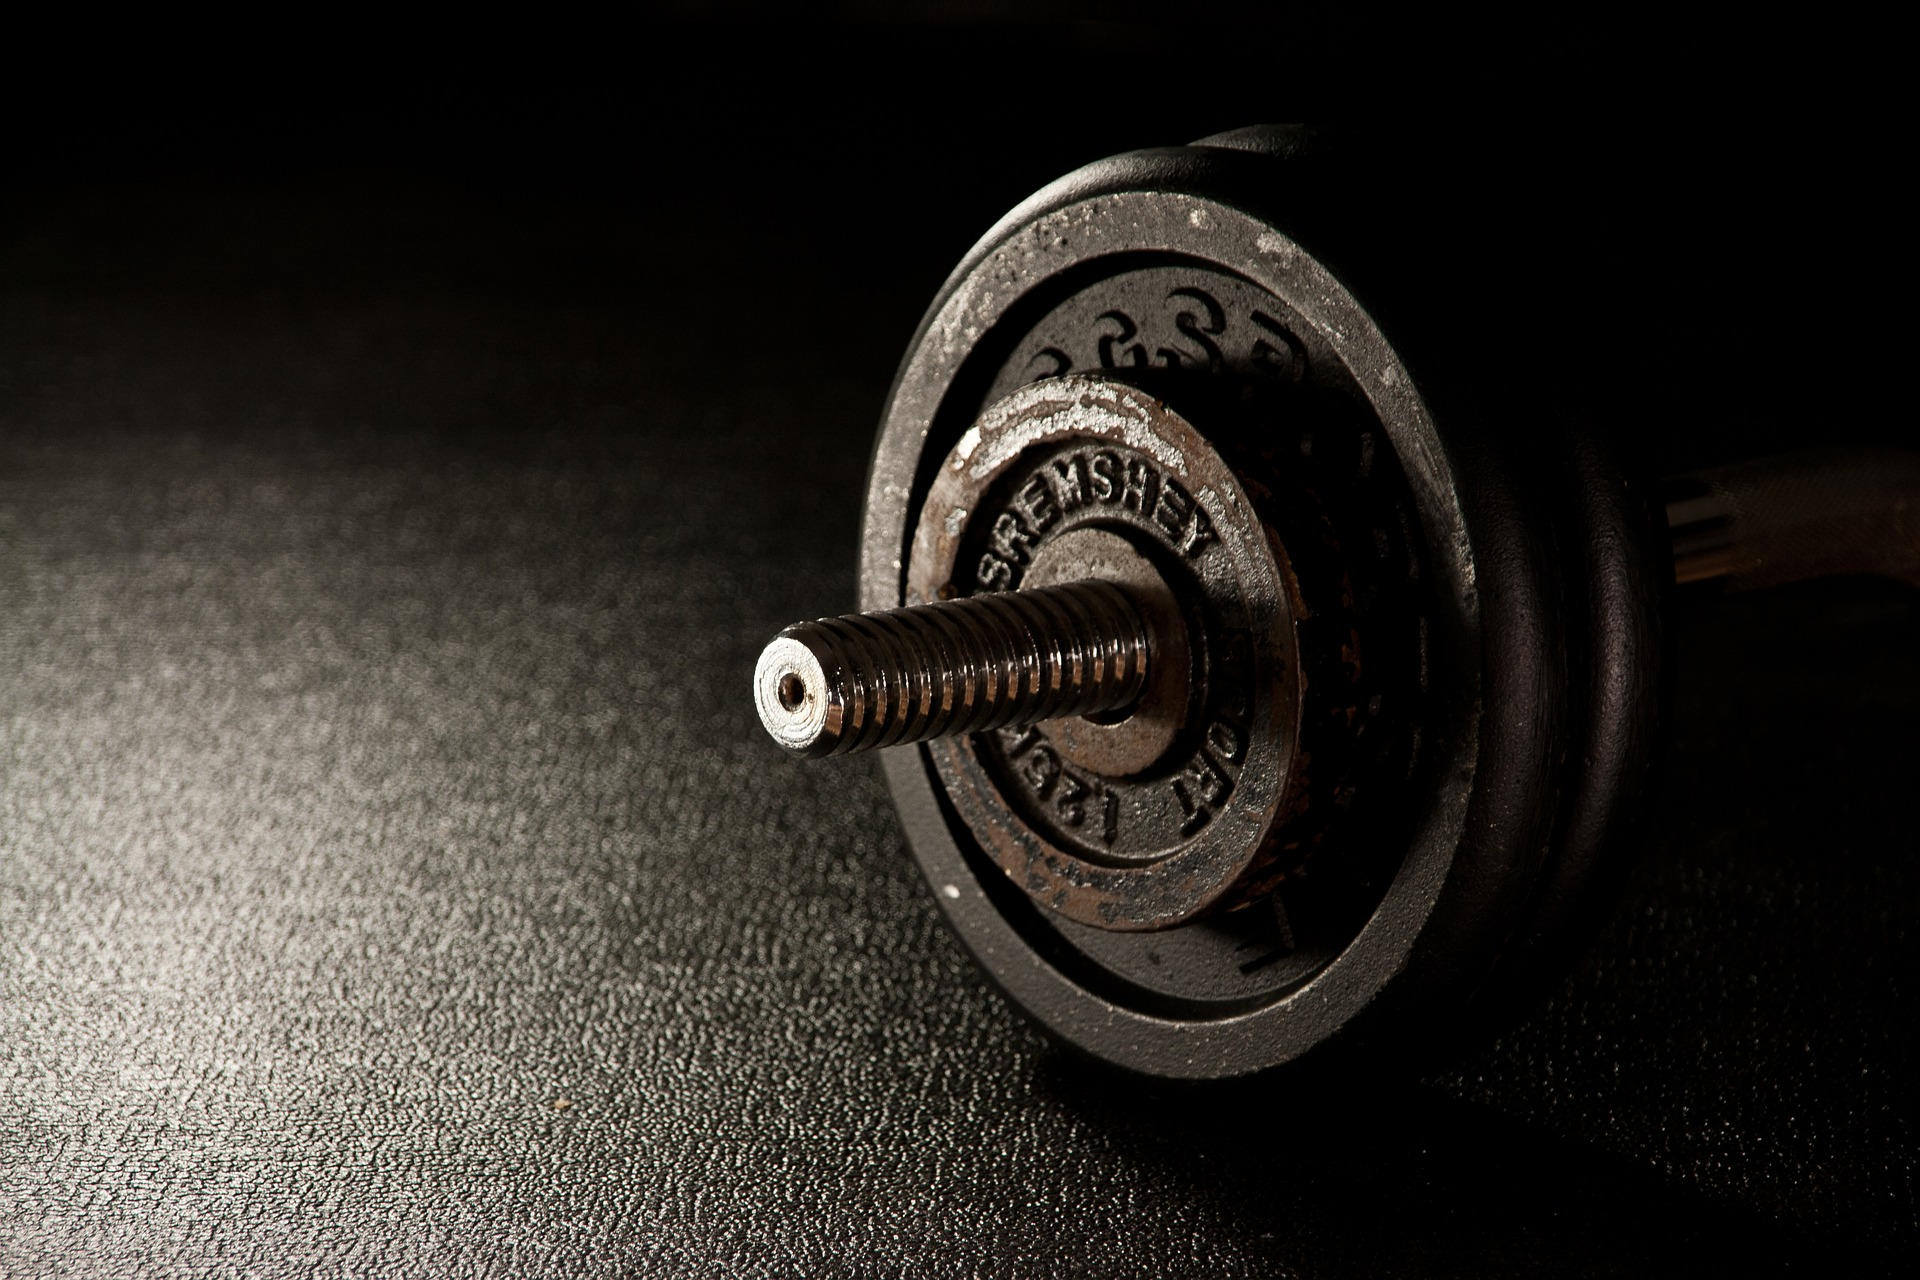 Almost three quarters of tradespeople regularly go to the gym